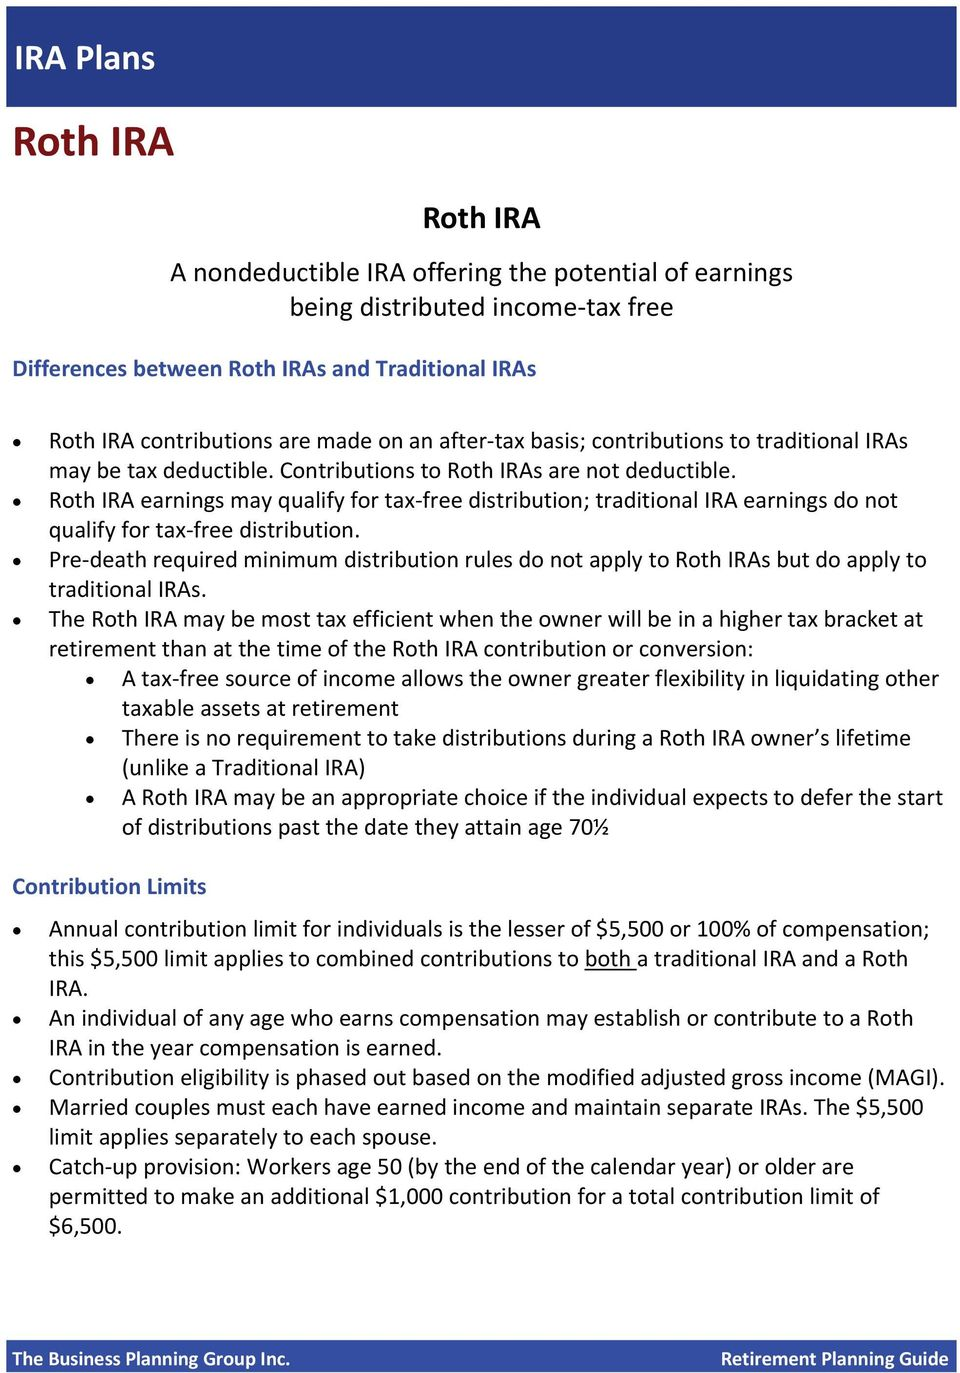 Roth IRA earnings may qualify for tax free distribution; traditional IRA earnings do not qualify for tax free distribution.